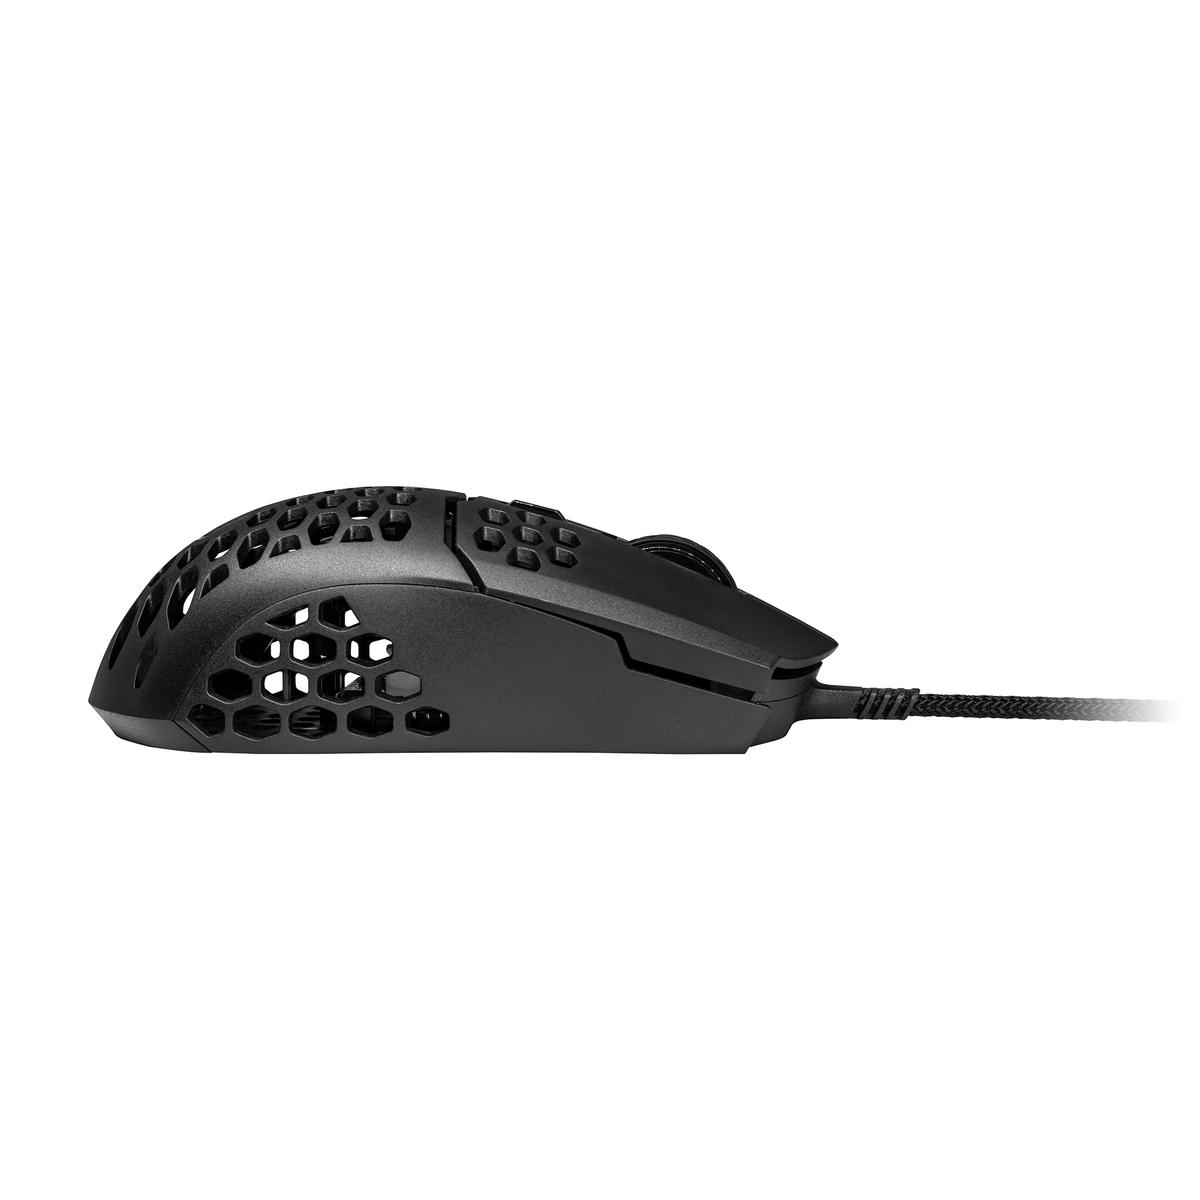 Cooler Master MM710 Wired Optical Mouse